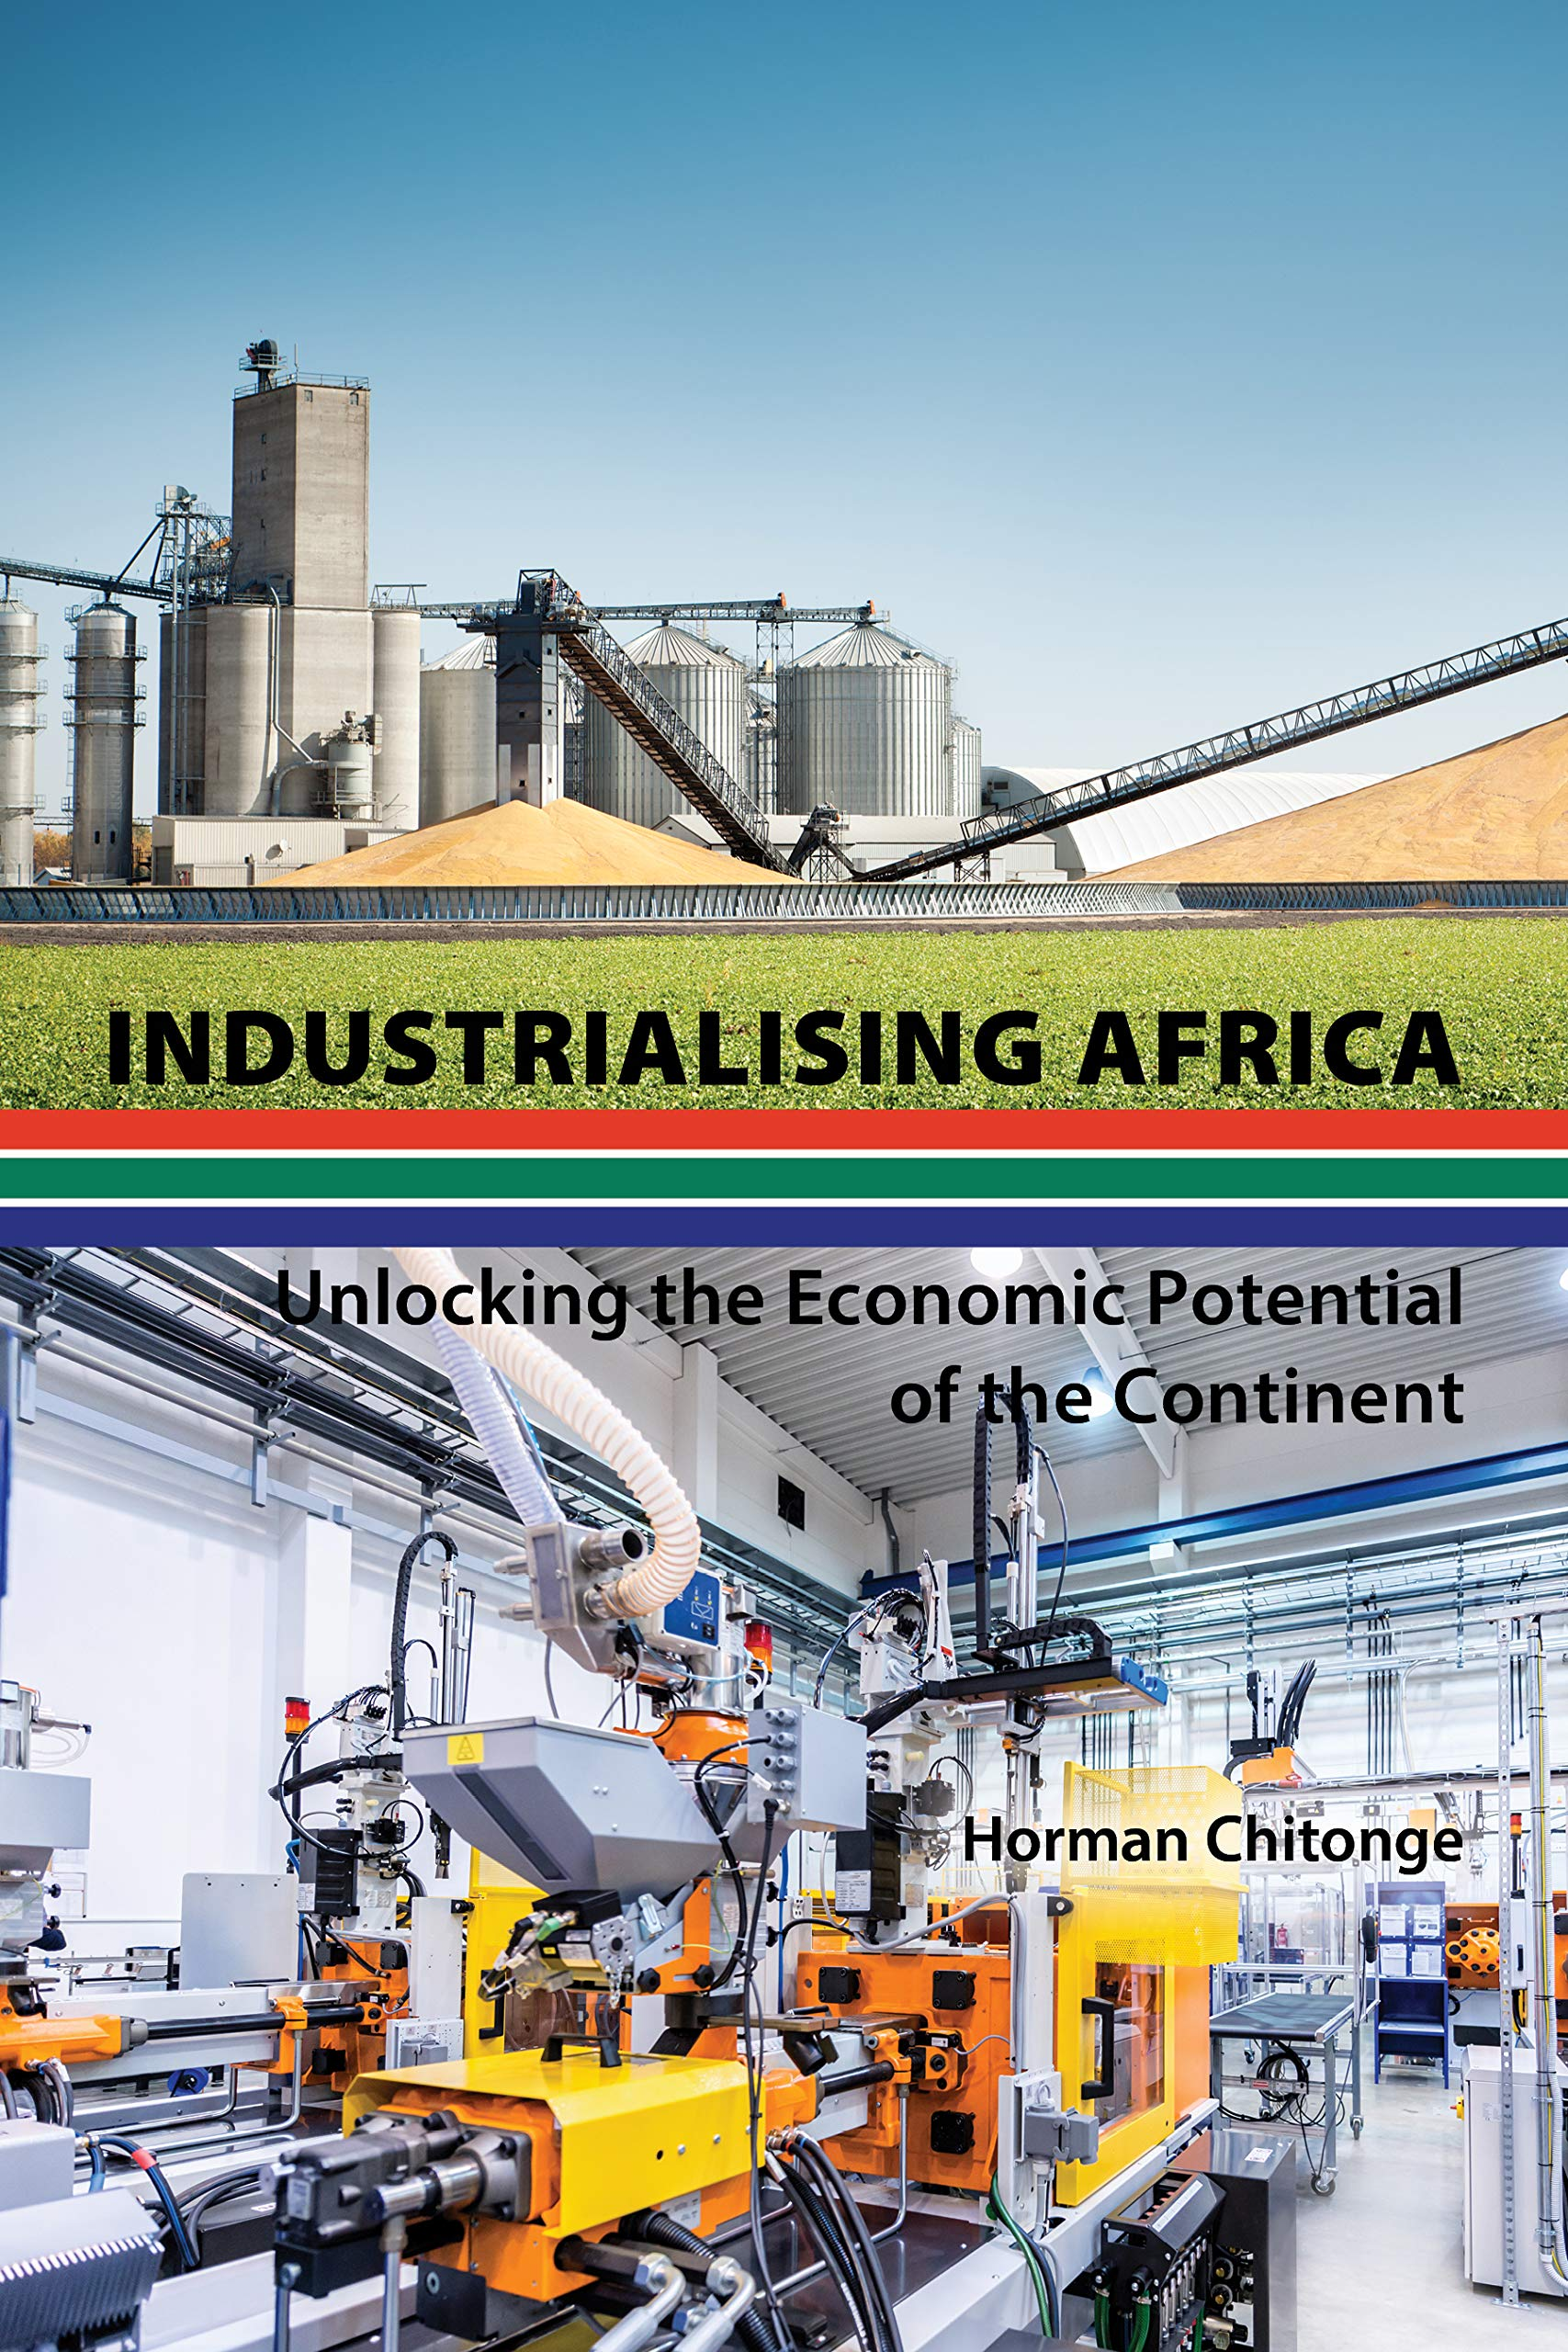 Industrialising Africa-Unlocking the Economic Potential of the Continent.jpg